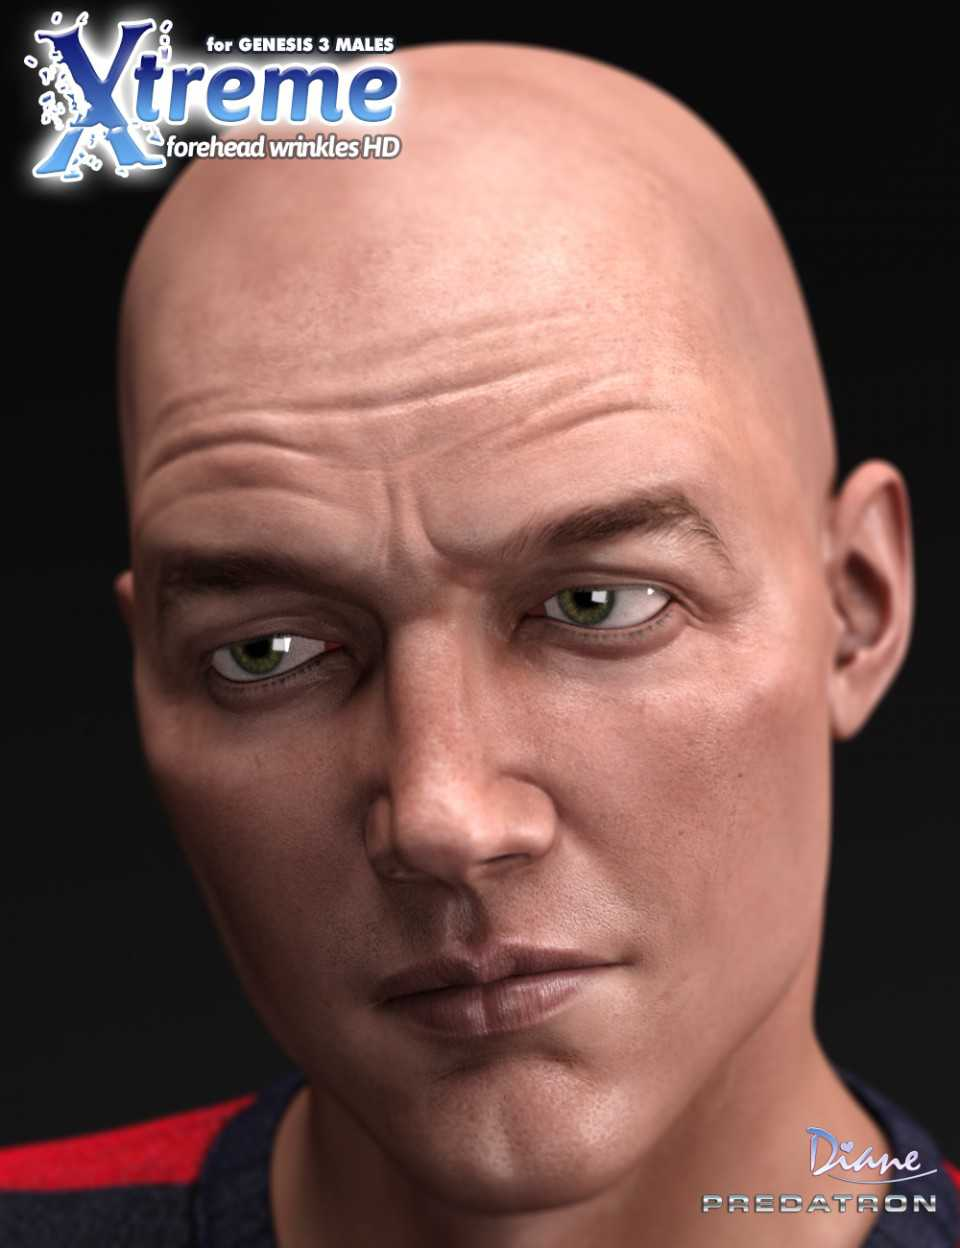 Xtreme Forehead Wrinkles HD for Genesis 3 Male(s)